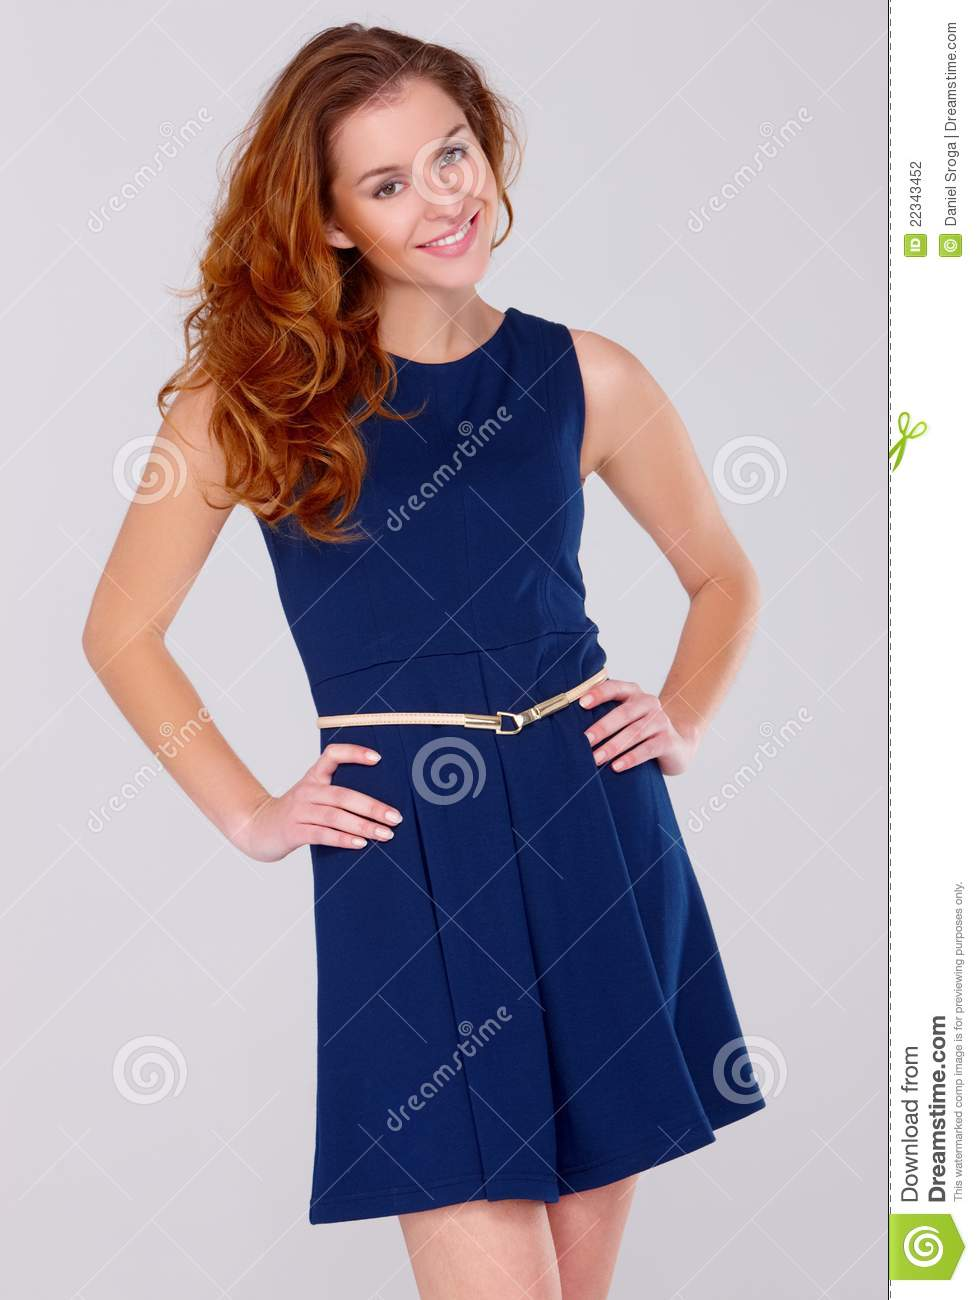 8673b0e33 Cute Young Woman In Navy Blue Dress On White Stock Photo - Image of ...